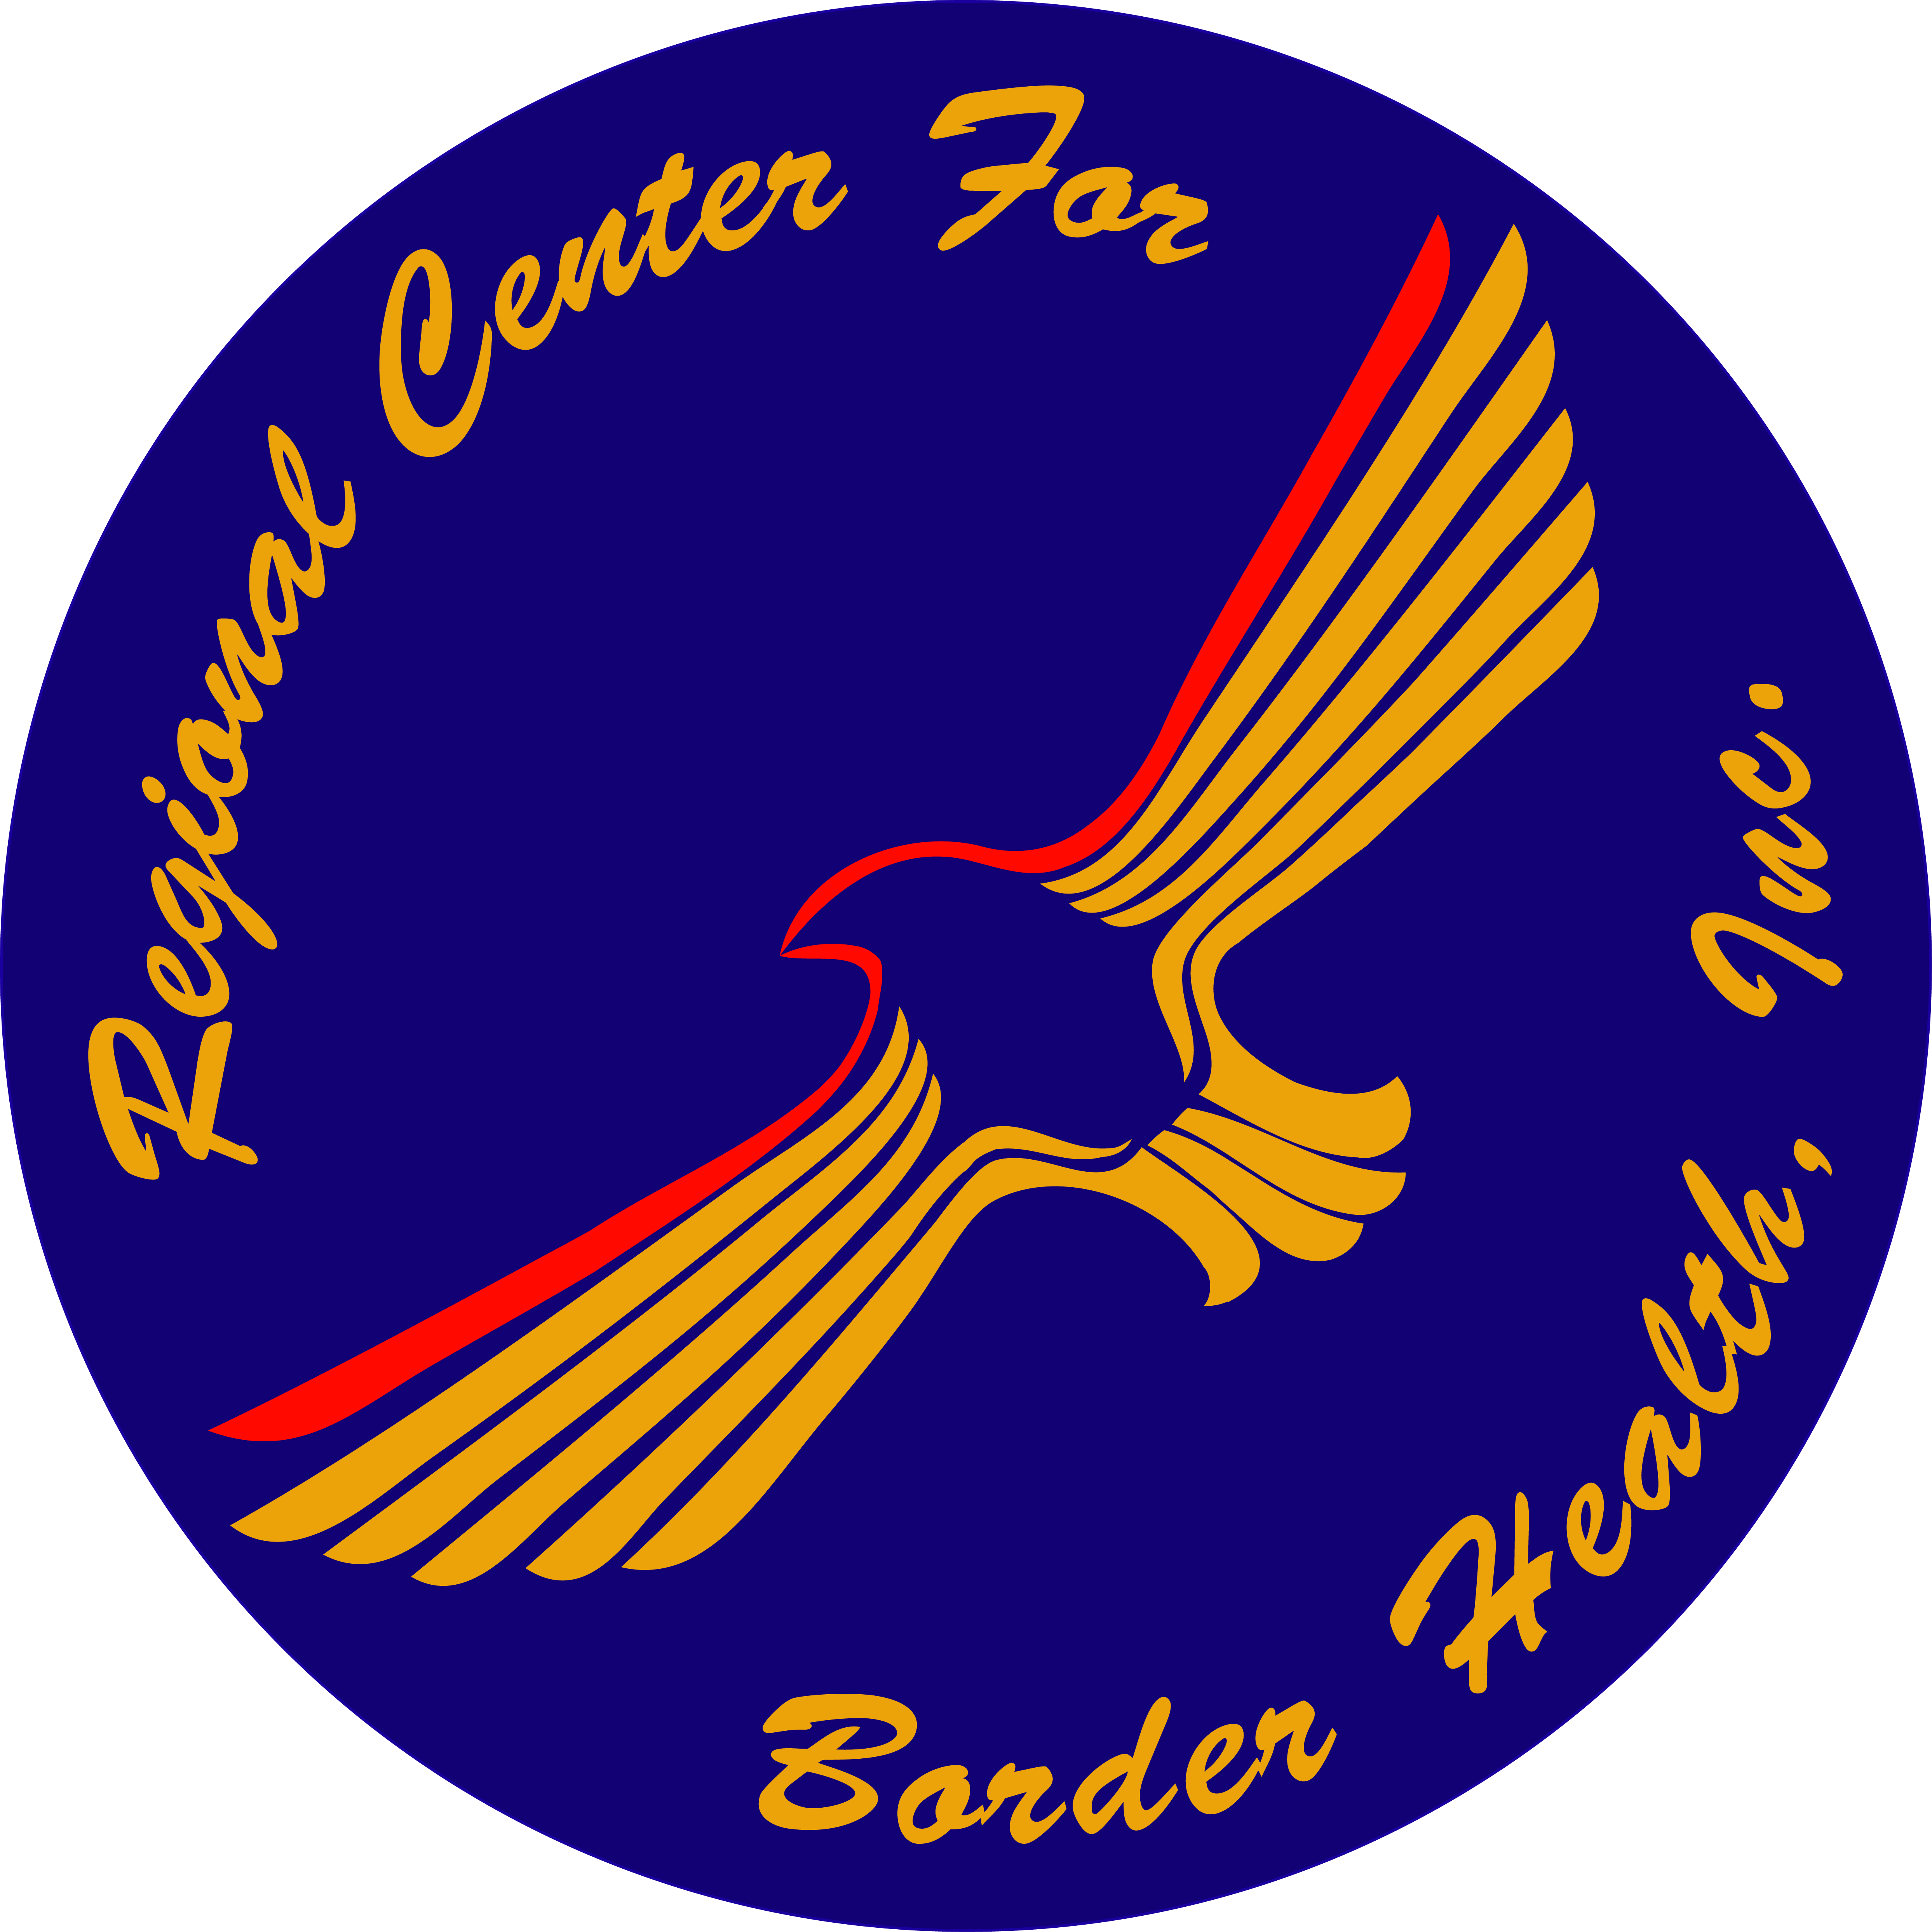 Regional Center for Border Health, Inc. Logo